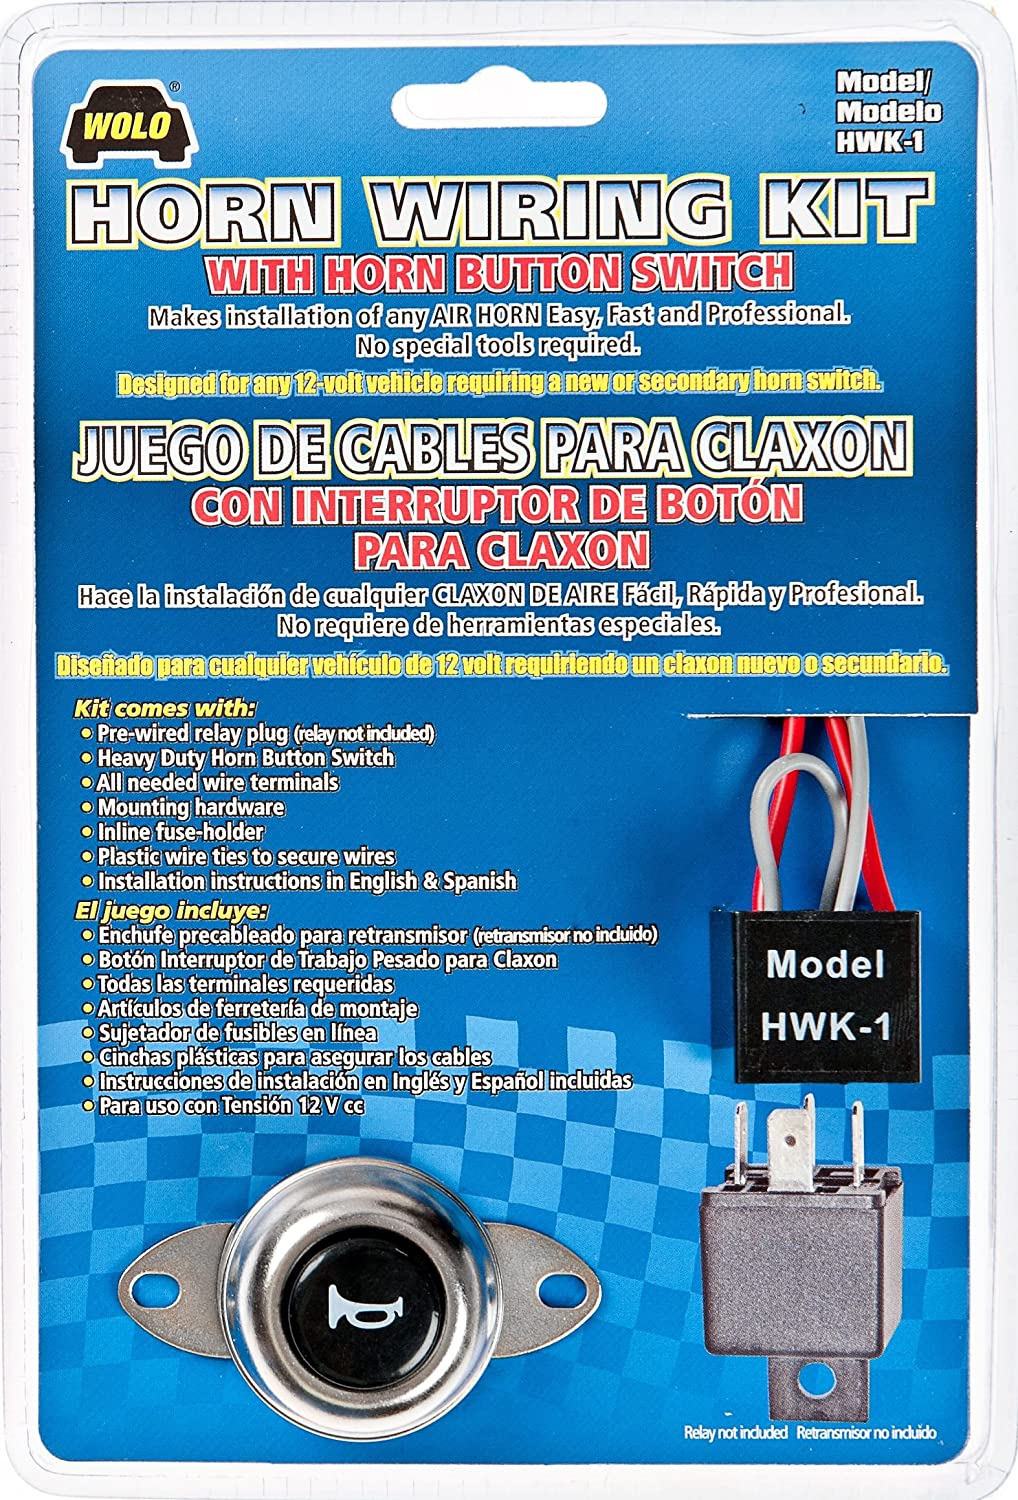 Wolo Hwk 1 Air Horn Wiring Kit With Button Switch Jeep Hurricane Harness Automotive